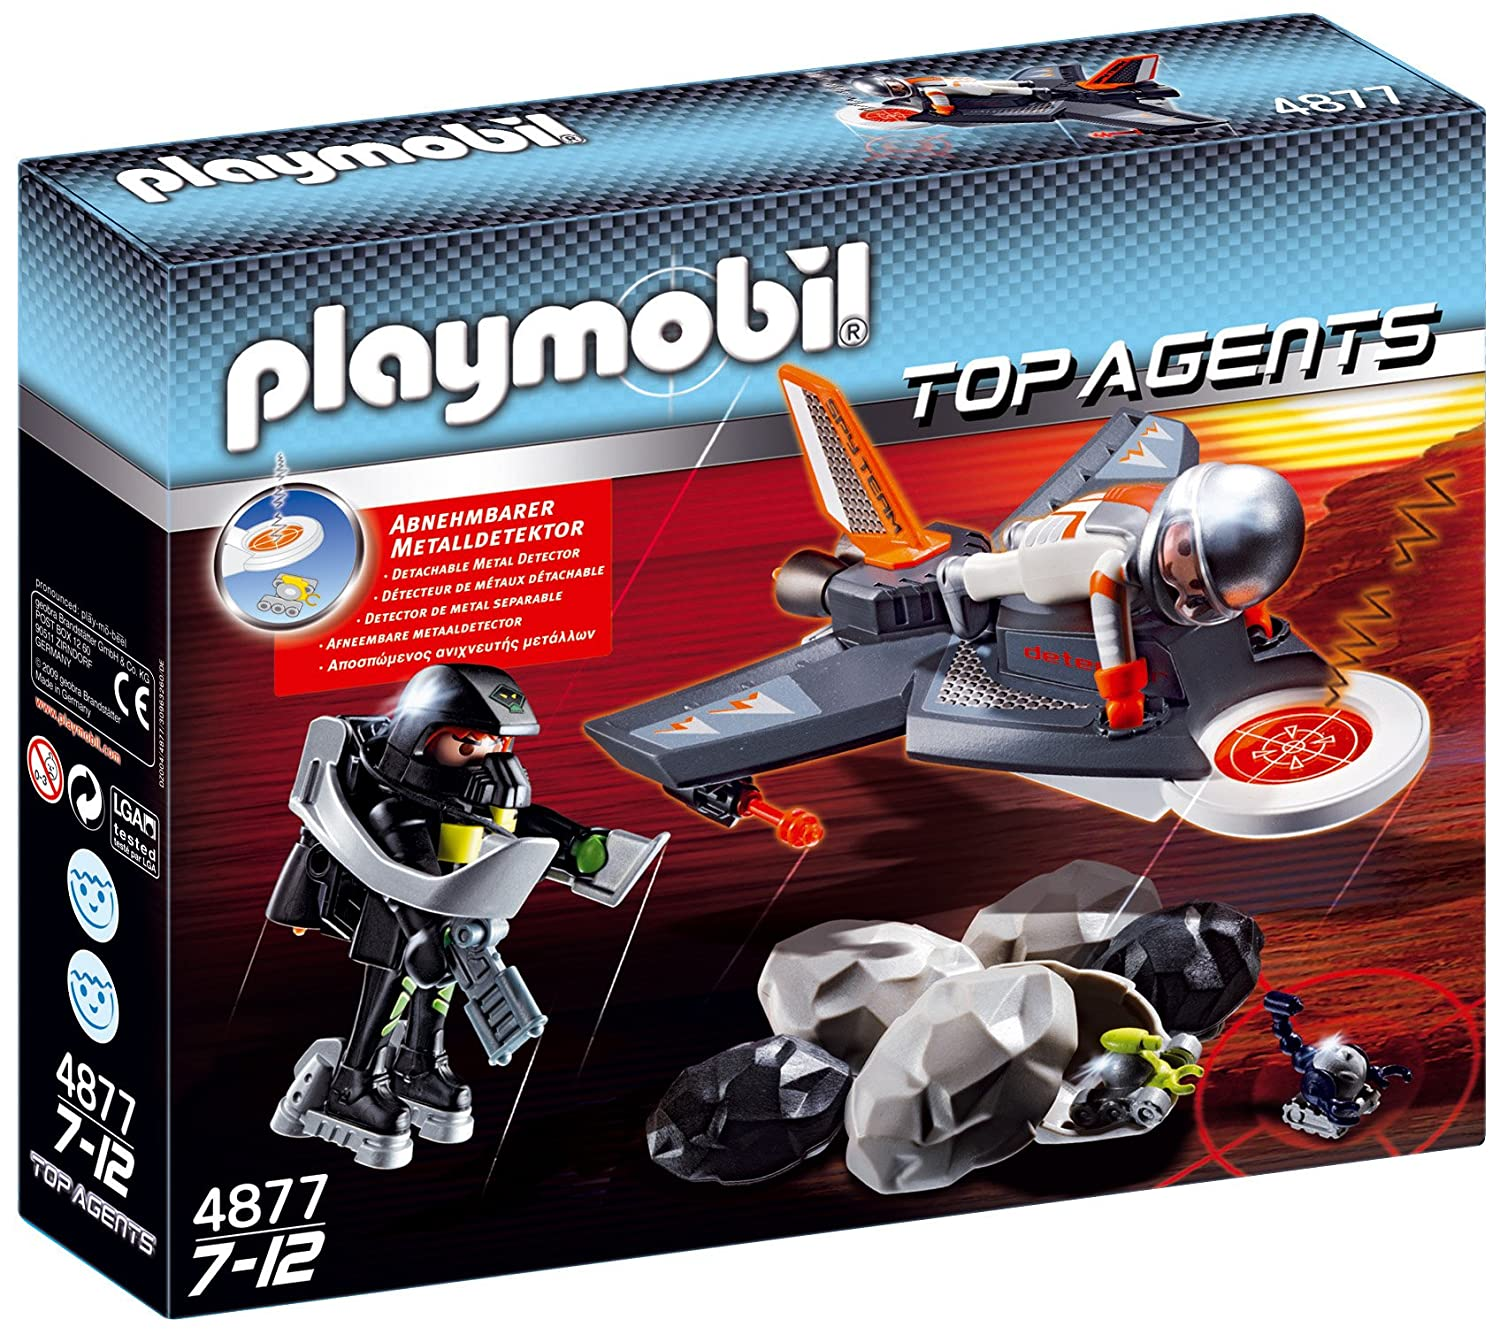 Amazon.com: PLAYMOBIL® Secret Agent Detection Jet Construction Set: Toys & Games